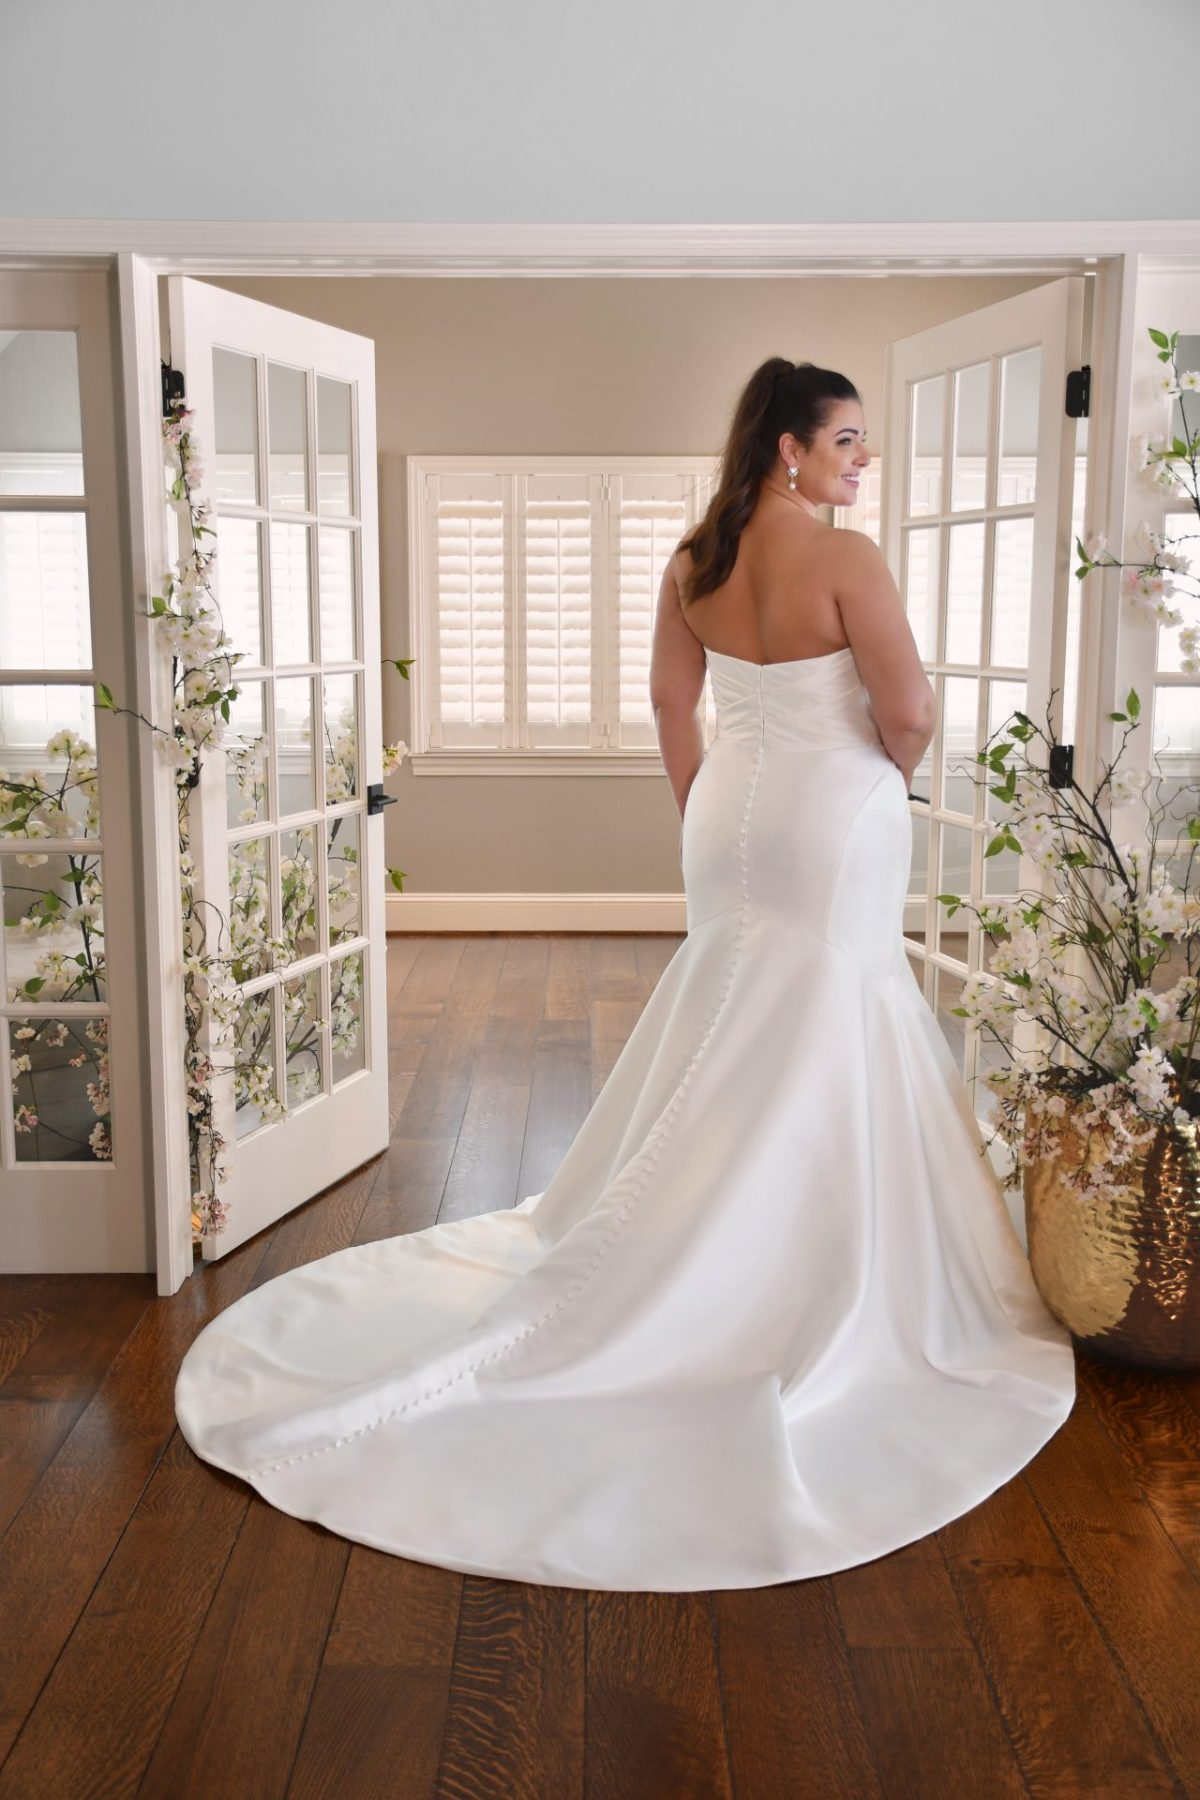 The stunning Essense of Australia D3340 Franscisco wedding dress is available from Emily Bridalwear in Sheffield, South Yorkshire.